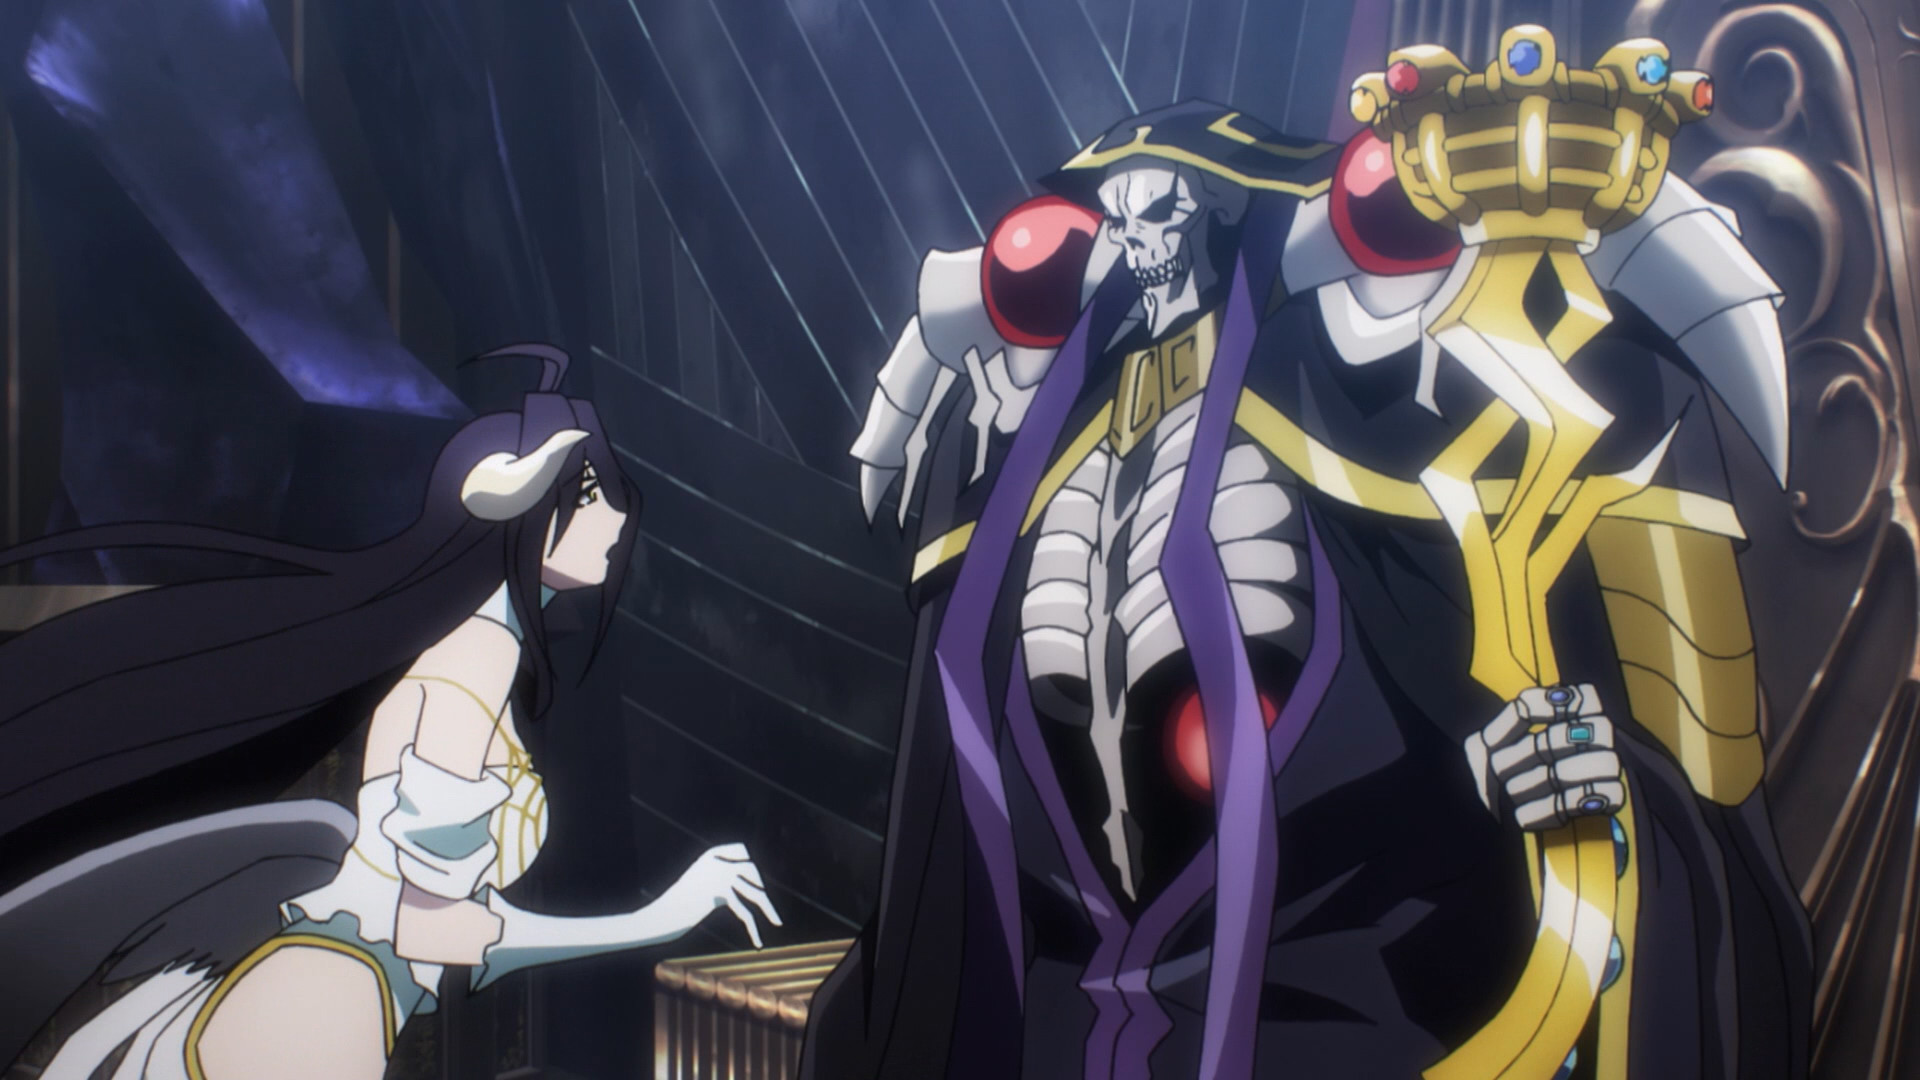 1920x1080 Albedo and Ainz Ooal Gown, Ainz Ooal Gown (Right) with Albedo (Left